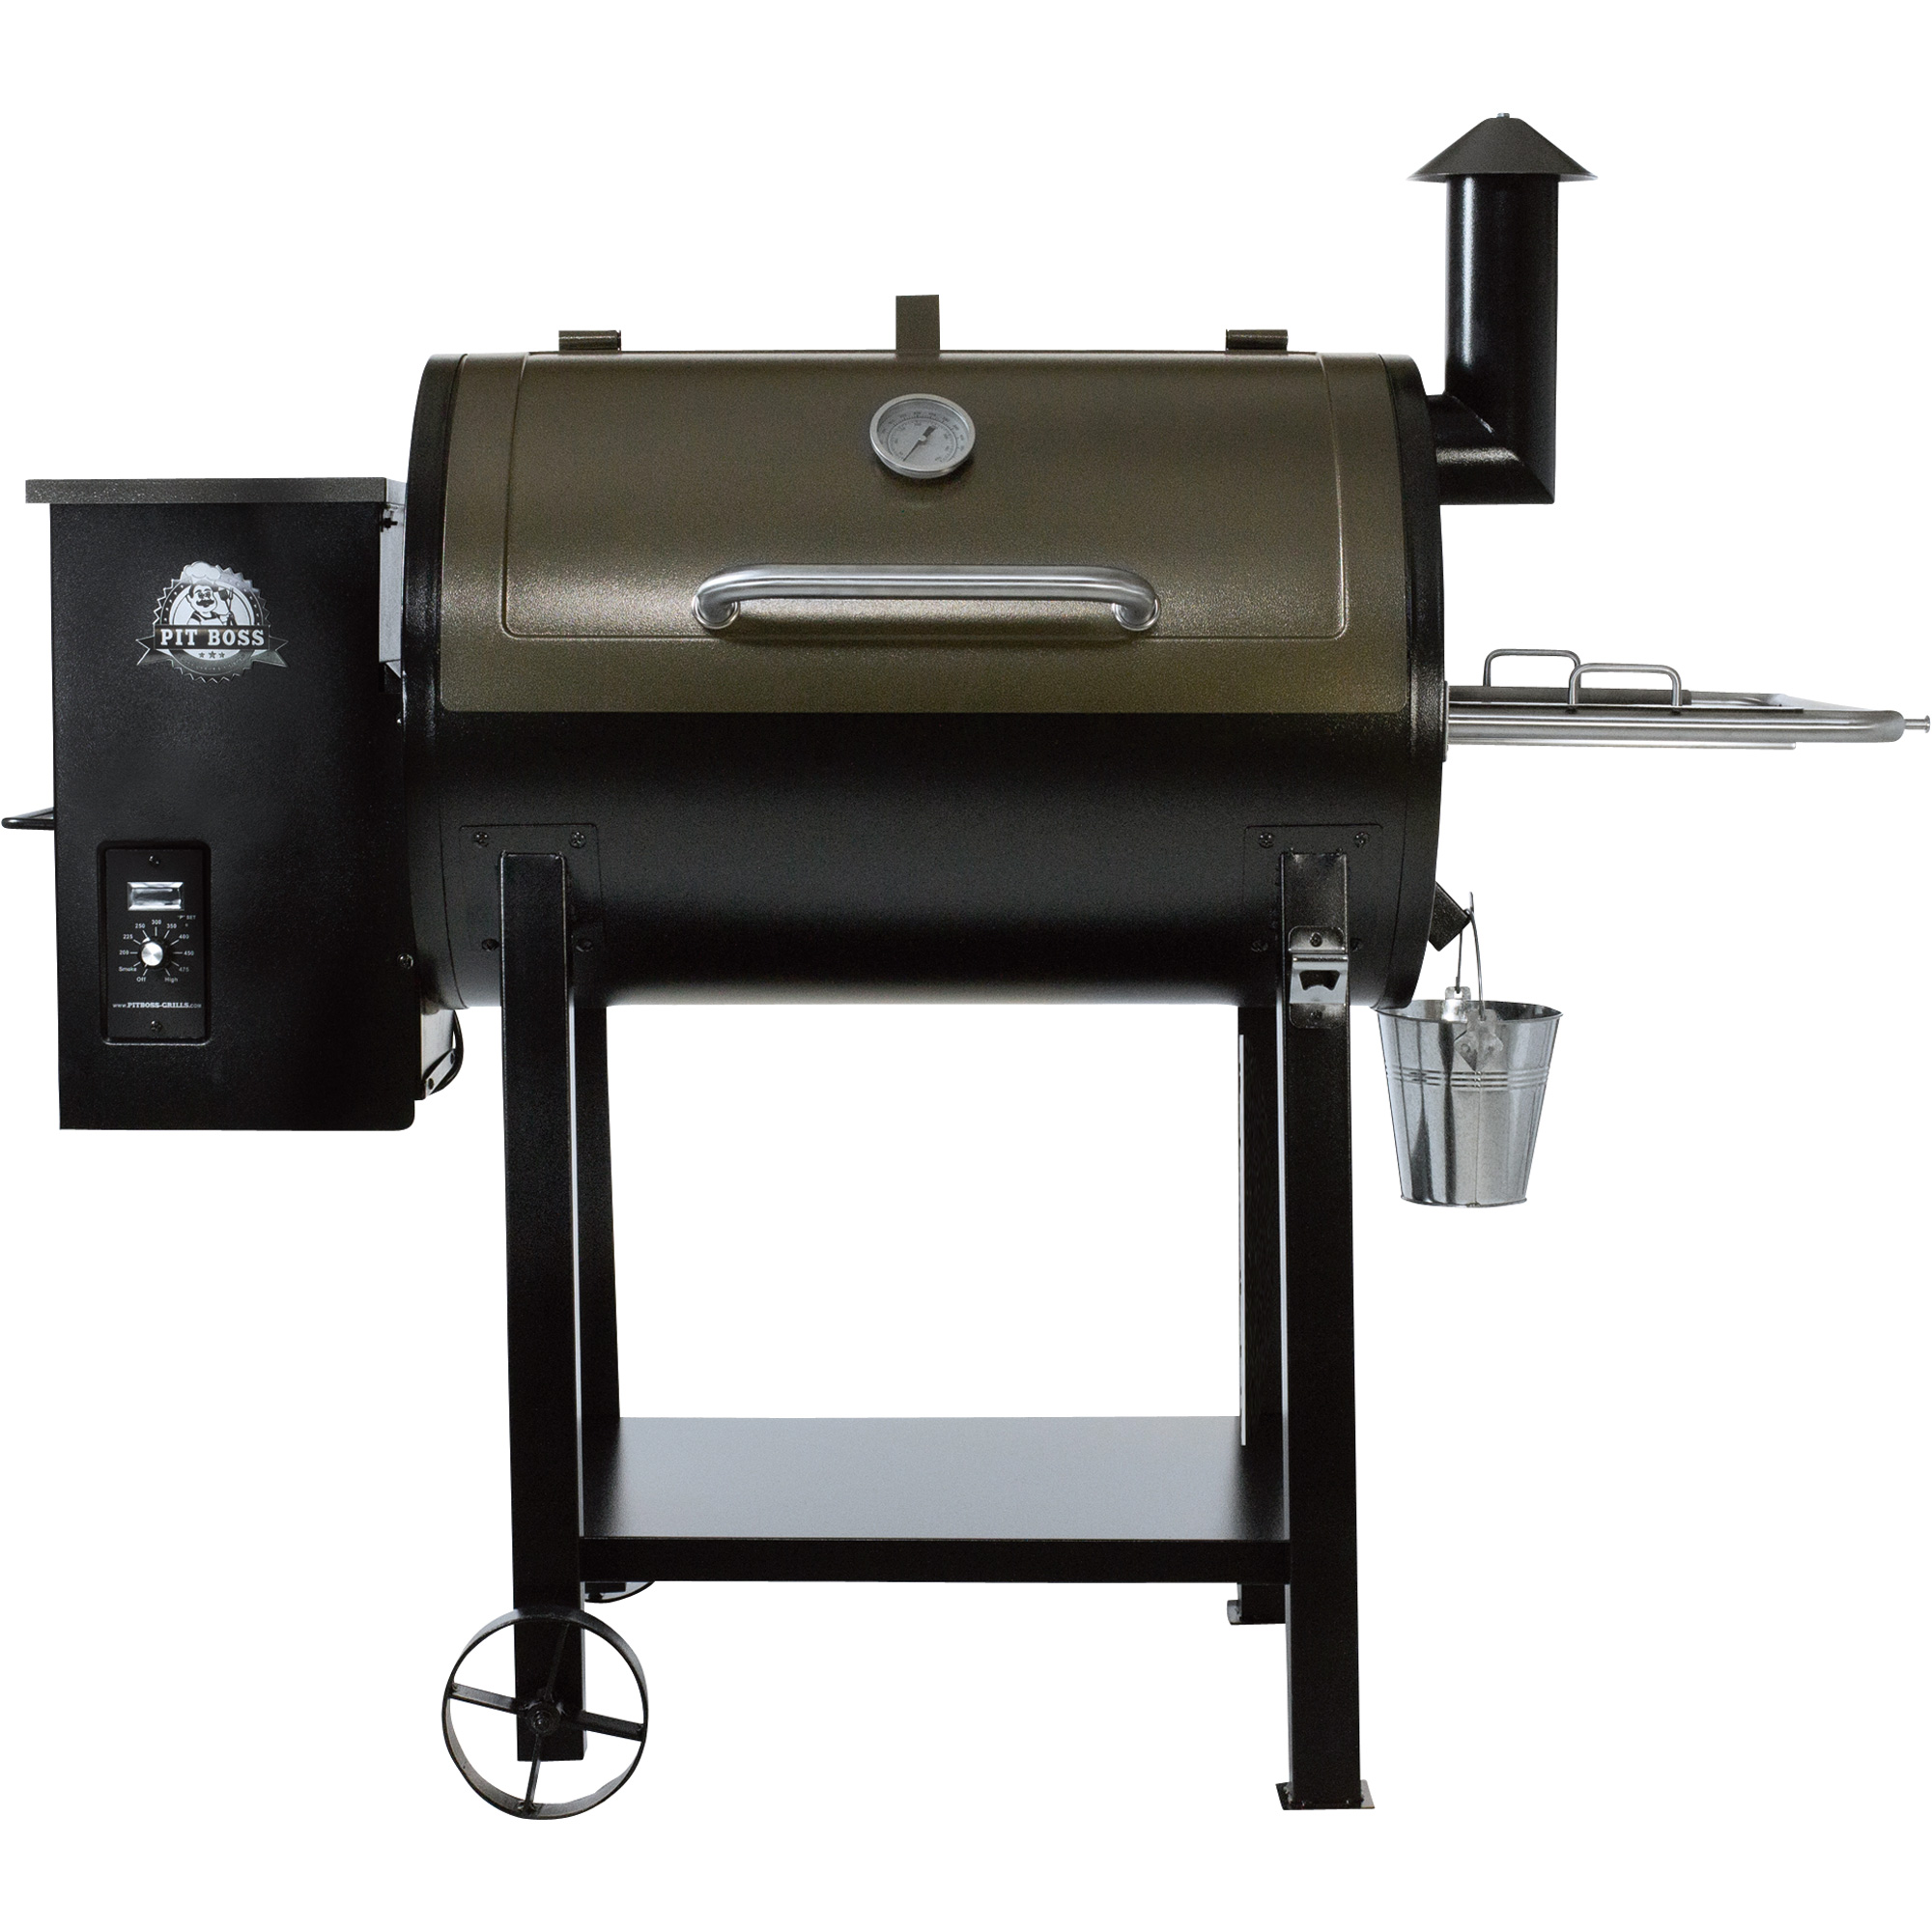 louisiana grills pit boss 820d wood pellet smoker grill model 72820 grills accessories. Black Bedroom Furniture Sets. Home Design Ideas